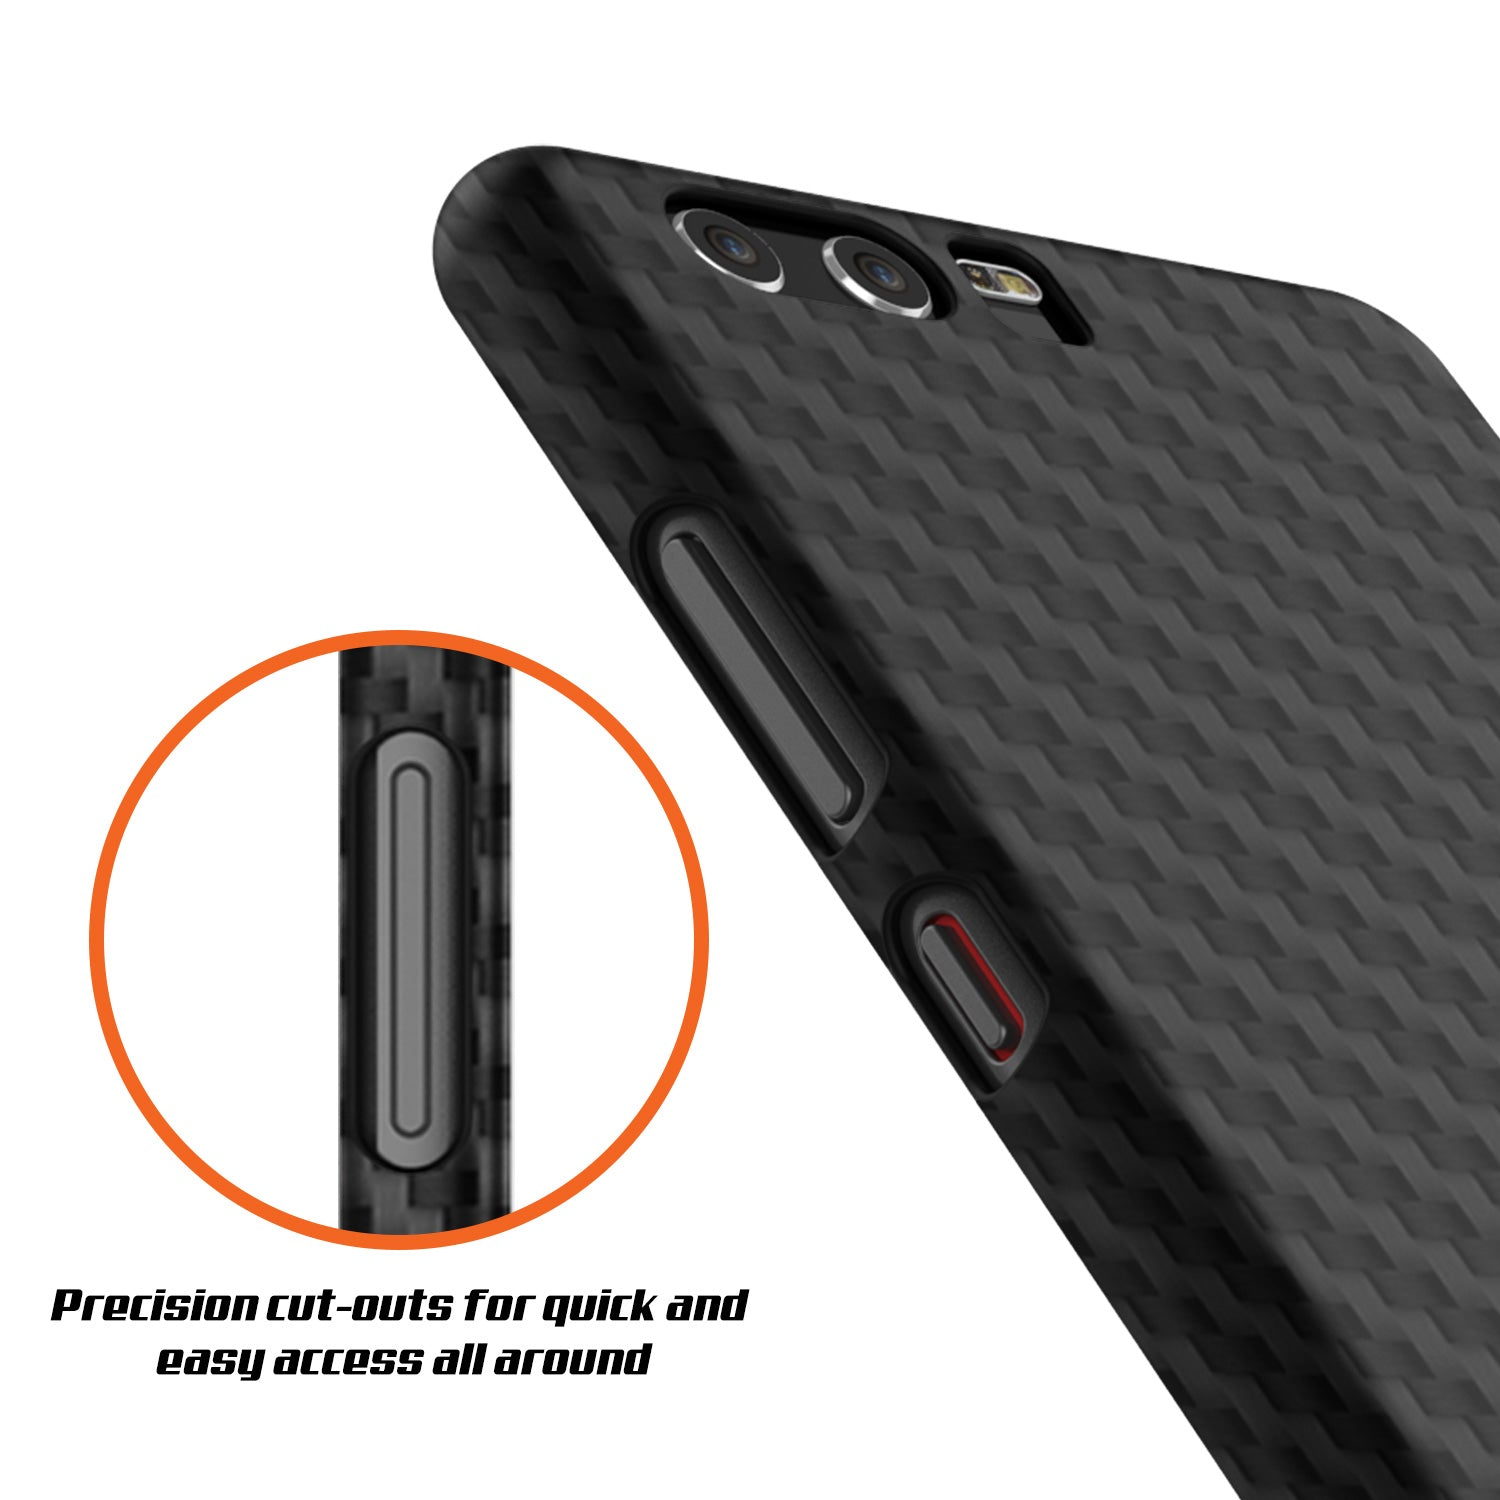 Huawei P10 Case, Punkcase CarbonShield, Heavy Duty [Jet Black] Cover